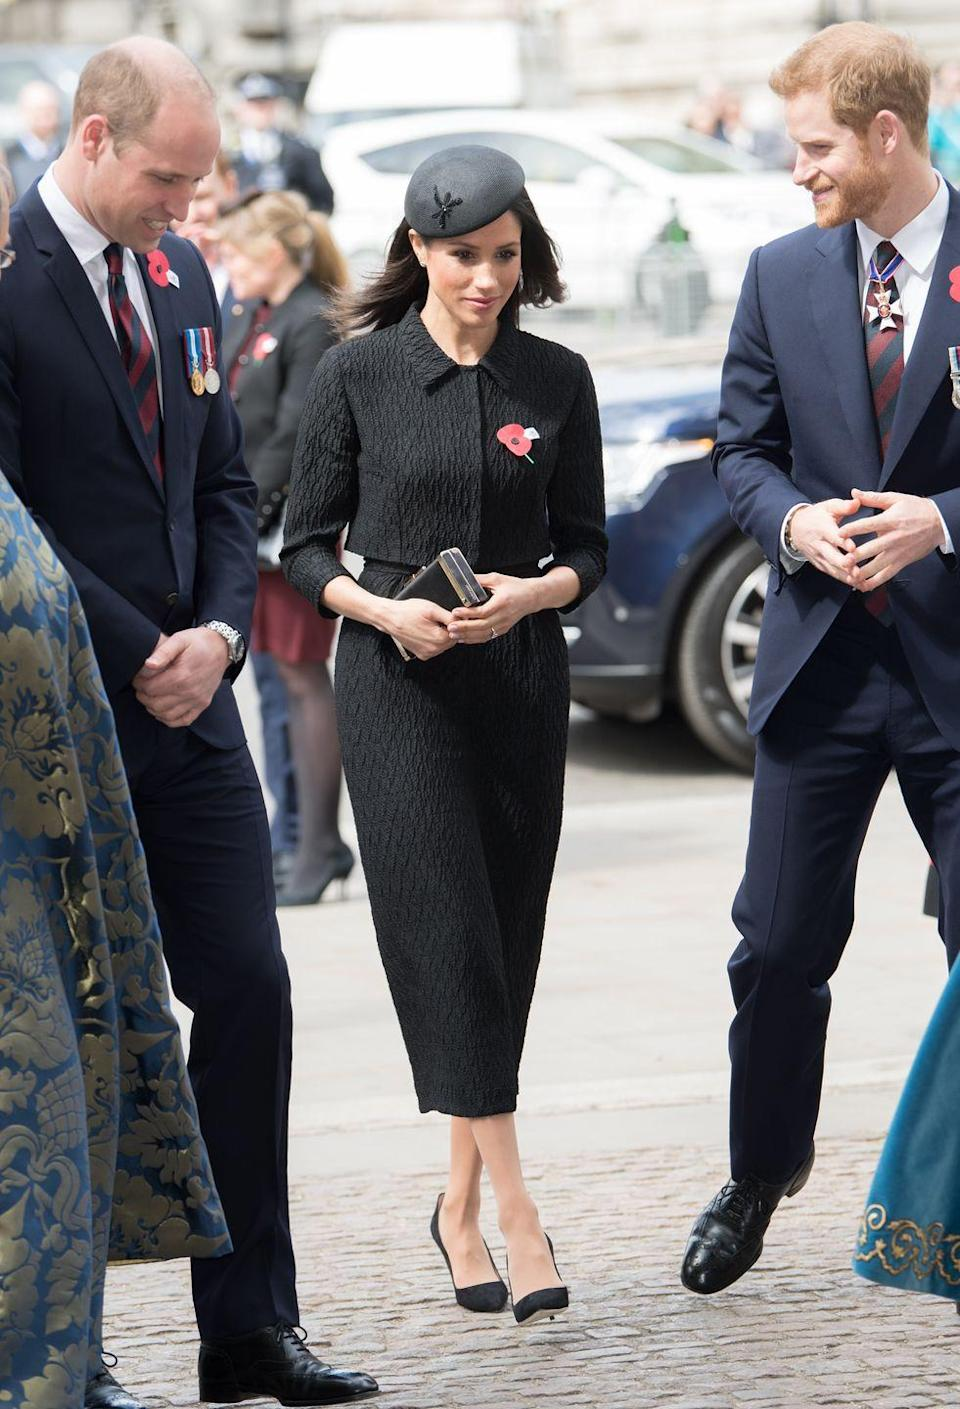 """<p>Markle wore another somber ensemble <a href=""""https://www.townandcountrymag.com/society/tradition/a20060050/prince-william-anzac-day-royal-baby-3-comments/"""" rel=""""nofollow noopener"""" target=""""_blank"""" data-ylk=""""slk:for the Anzac Day service"""" class=""""link rapid-noclick-resp"""">for the Anzac Day service</a> at Westminster Abbey. For this occasion, she wore custom Emilia Wickstead blazer and dress with a Philip Treacy beret, Manolo Blahnik shoes, and a Jimmy Choo clutch. She also wore a poppy pin, which is worn in remembrance of those who died in war. </p>"""